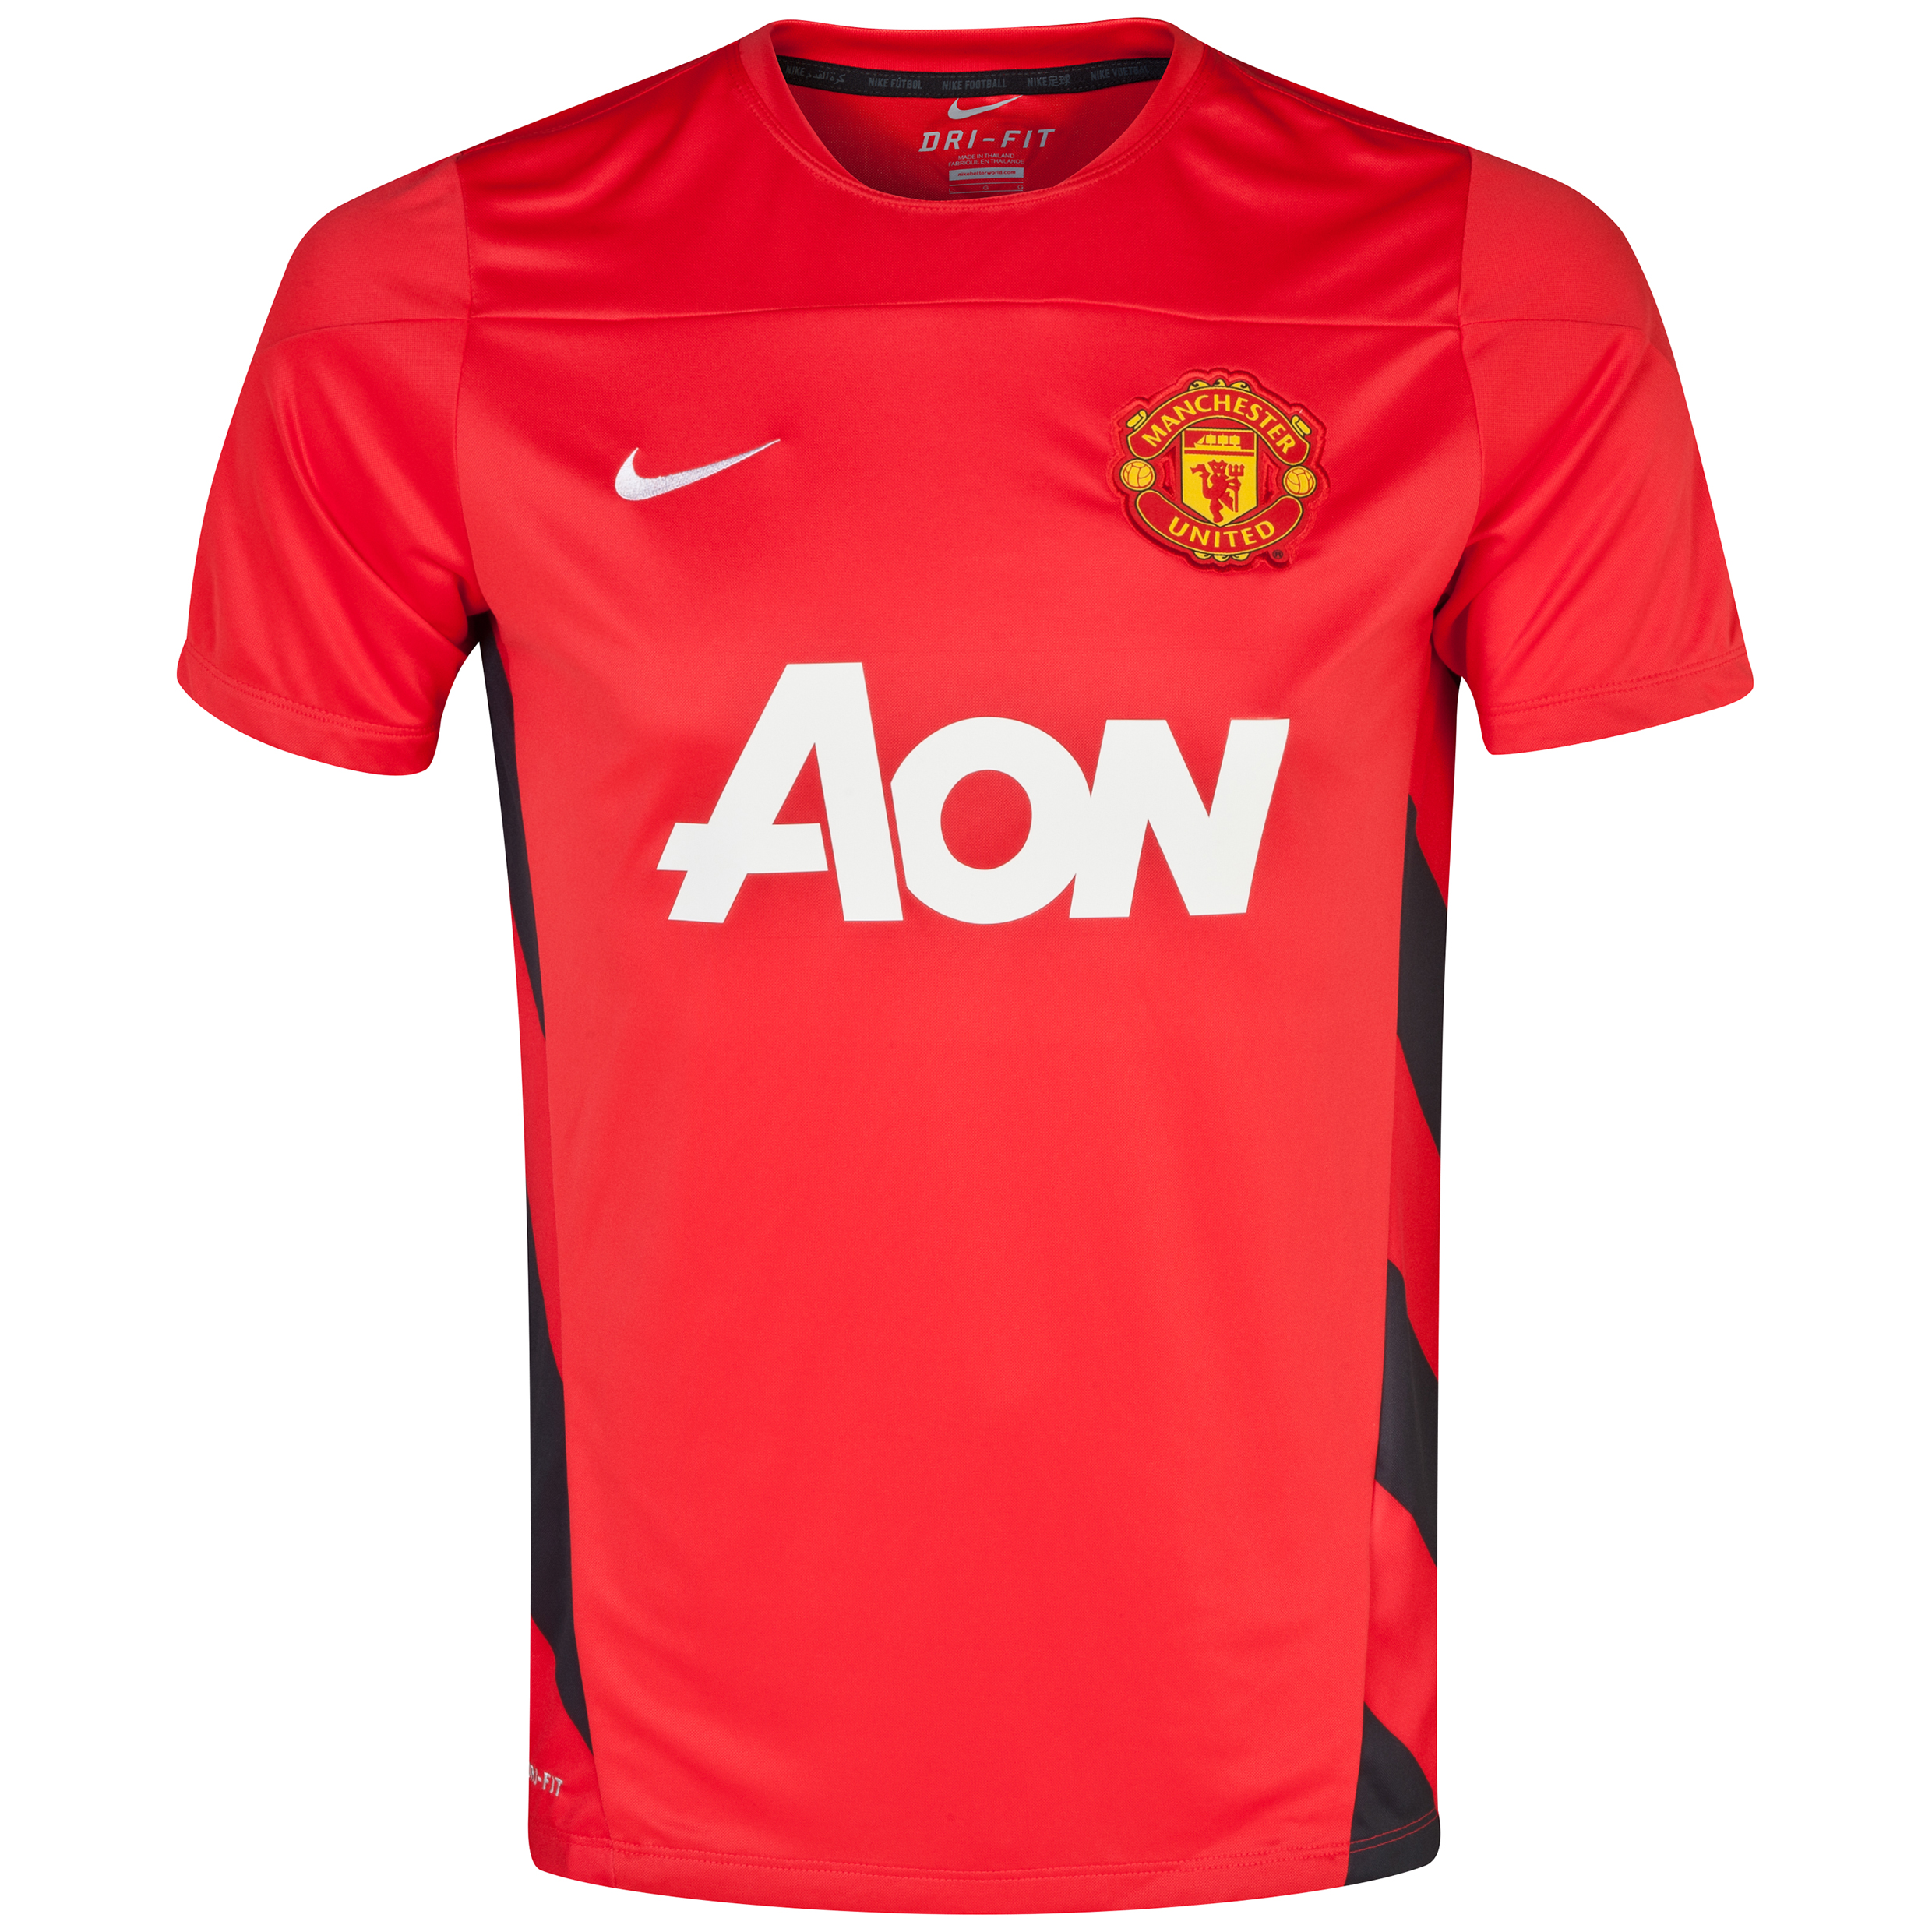 Manchester United UEFA Champions League Squad Short Sleeve Training Top - Challenge Red/Black/White Red